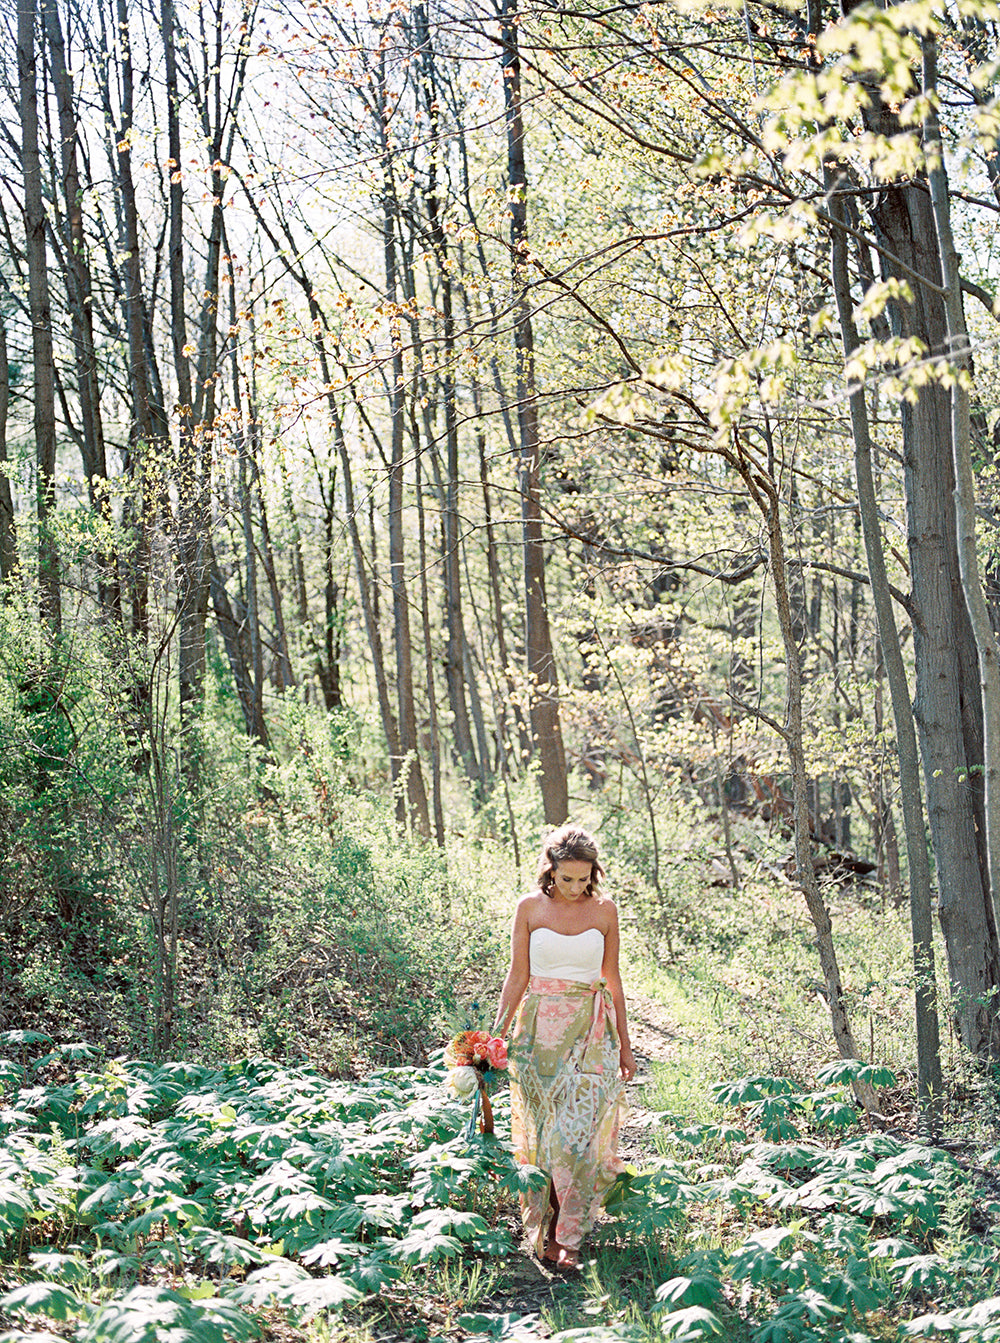 firelight-camps-wedding-inspiration-stacy-k-floral-23